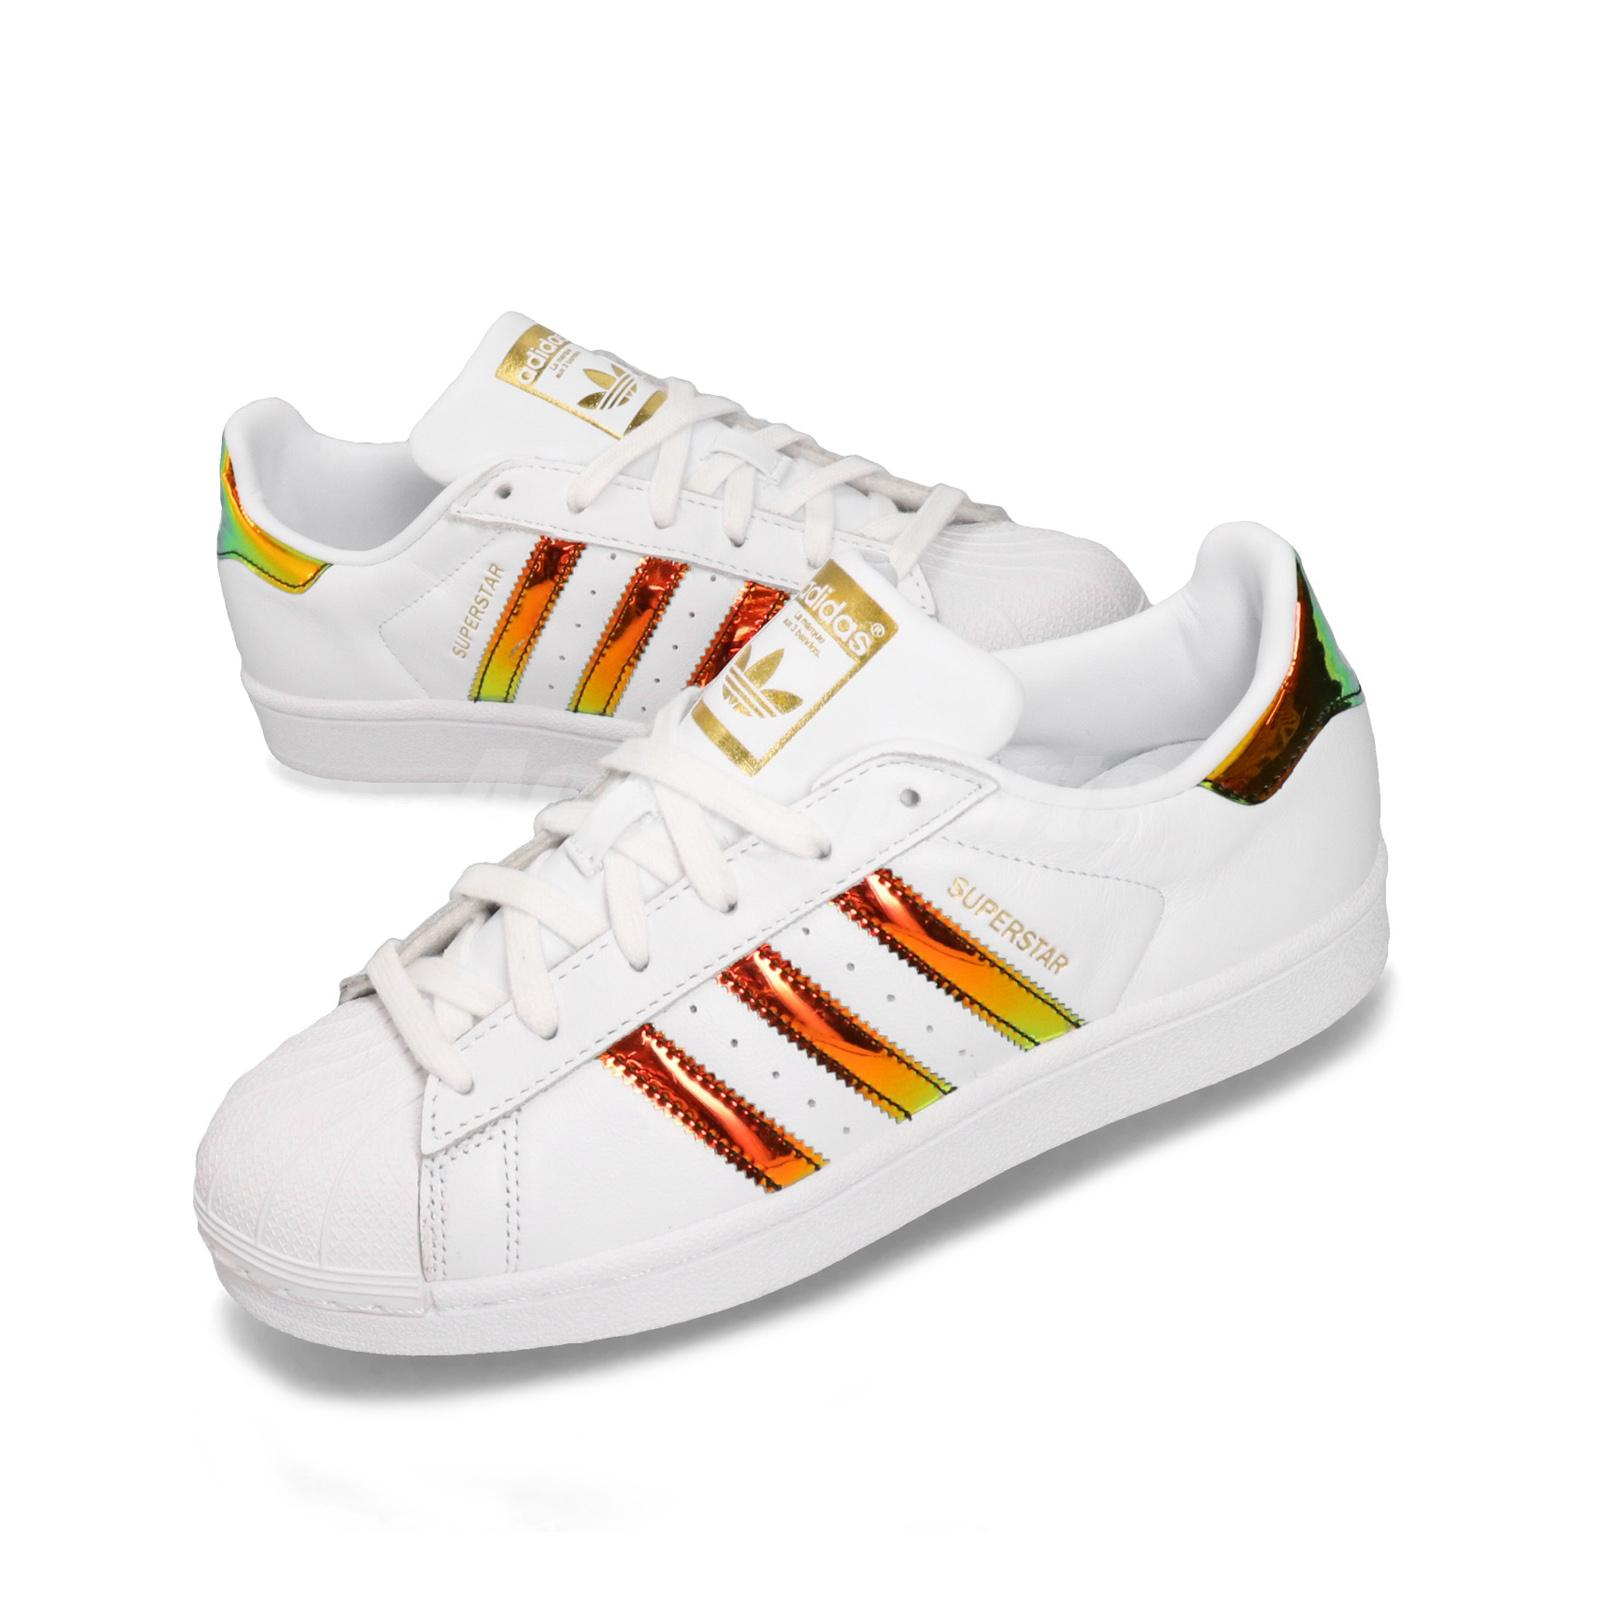 newest 94672 b8116 Details about adidas Superstar W White Gold Womens Classic Casual Shoes  Sneakers EG2918